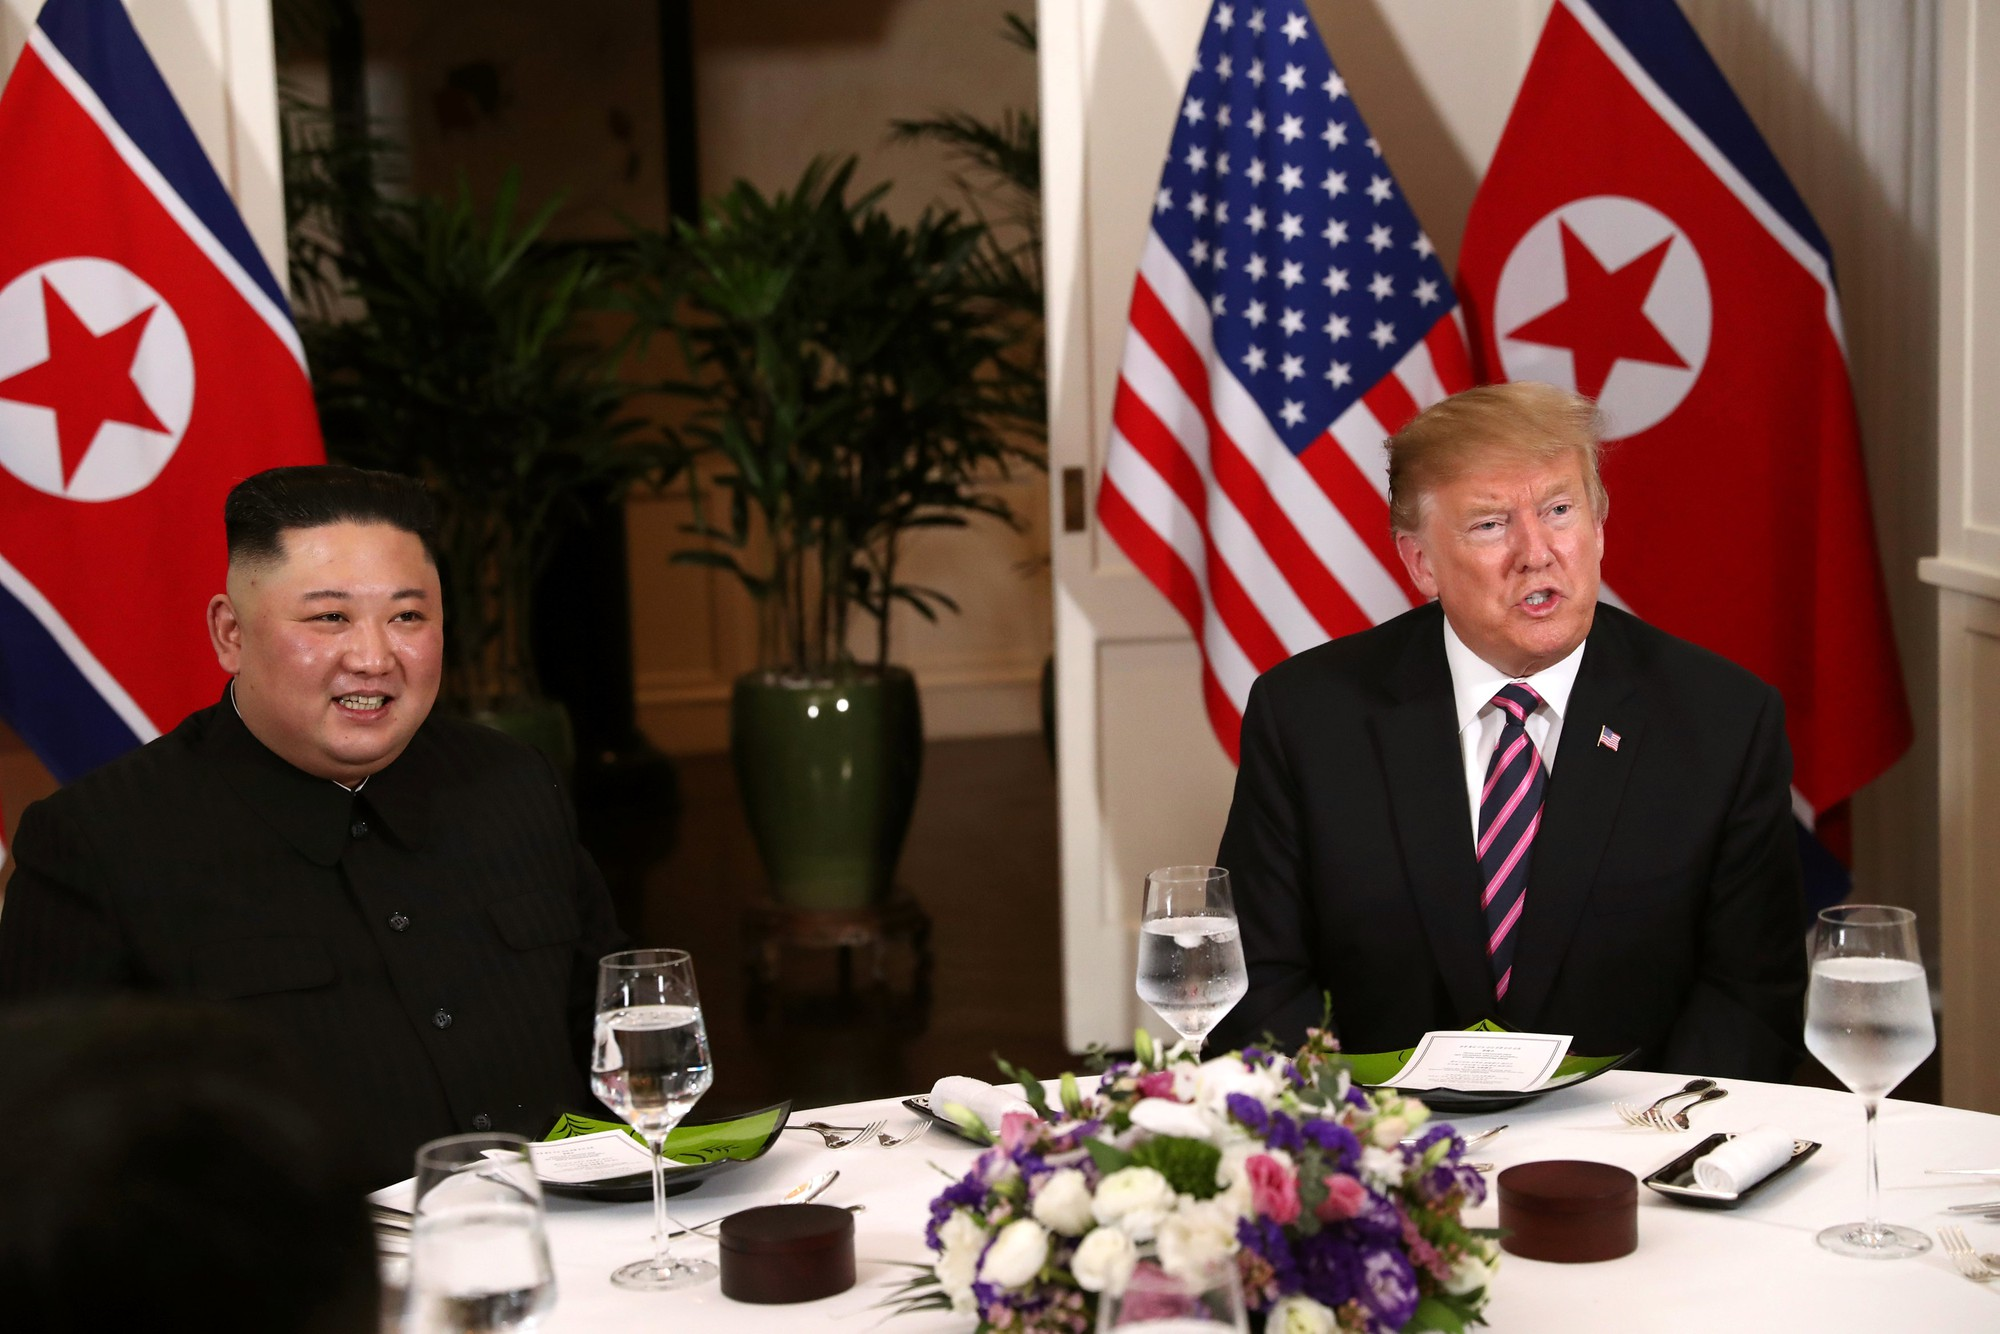 North Korean leader Kim Jong Un and United States President Donald Trump have dinner following their brief meeting in Hanoi on February 27, 2019. Photo: Reuters